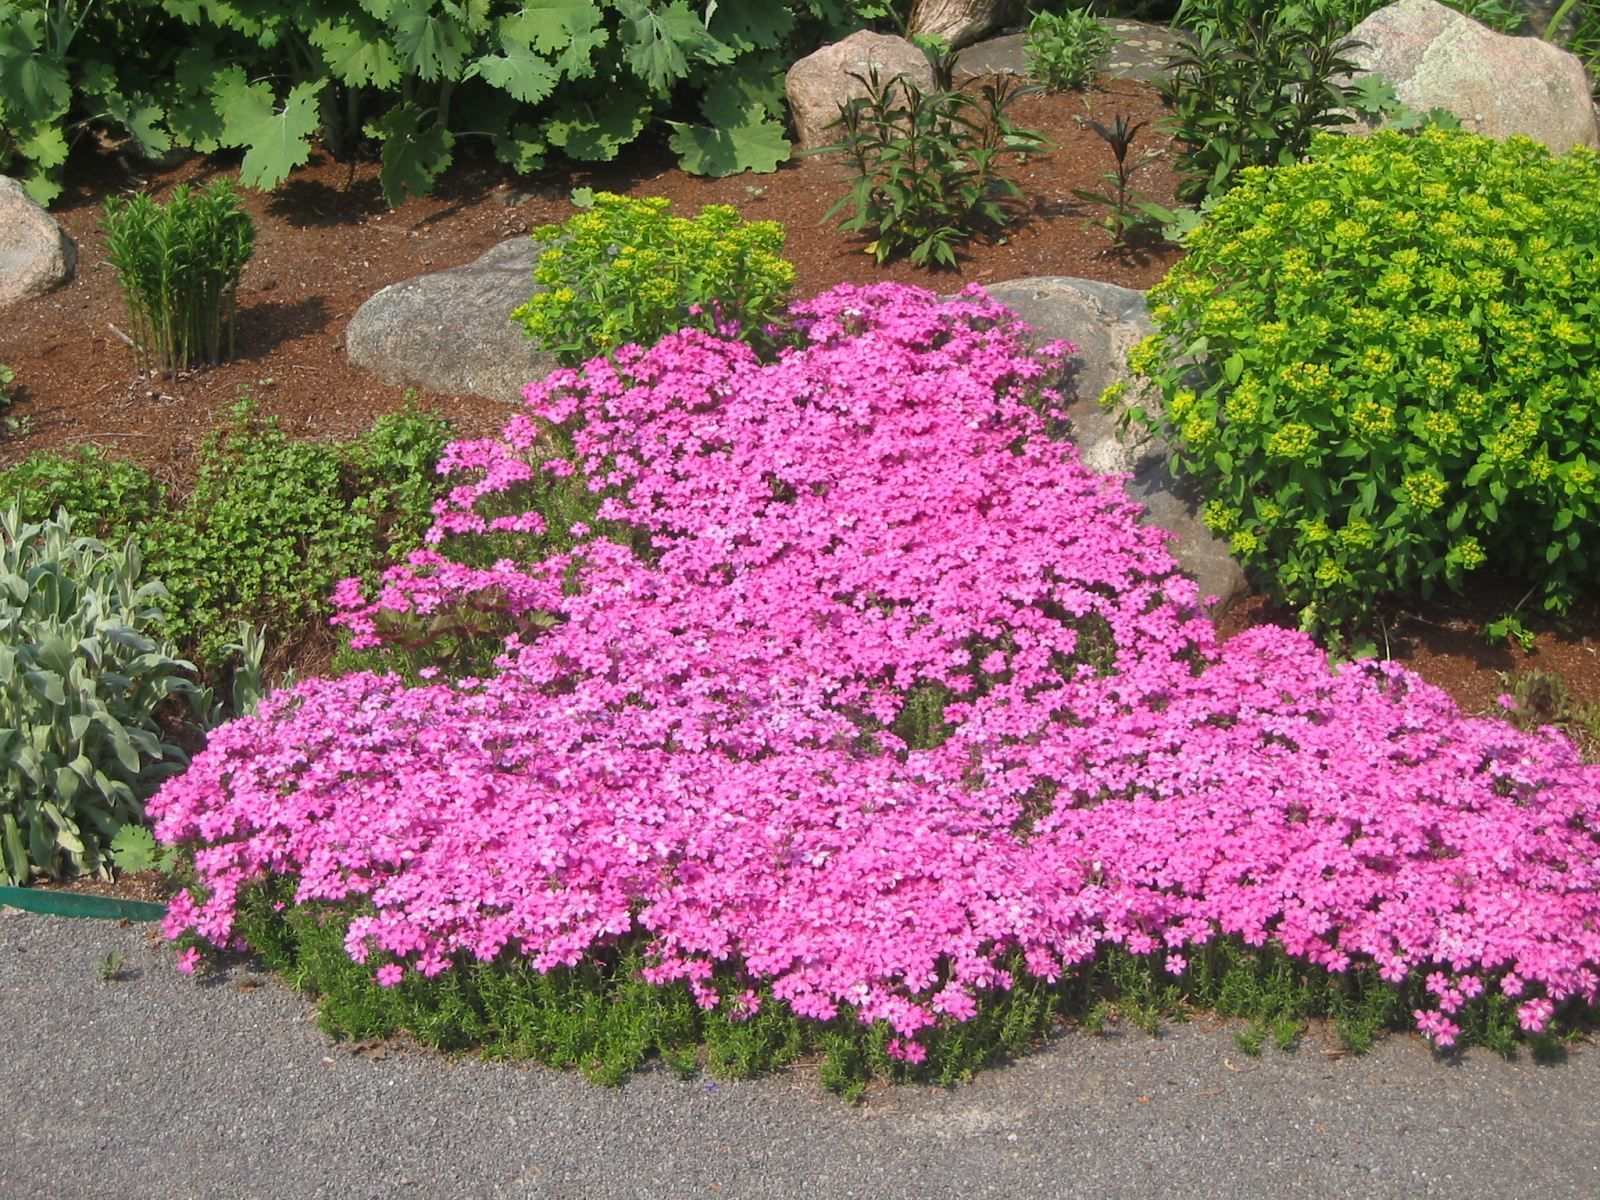 Phlox subulata pink a long lived cold climate perennial it is journal garden design montreal perennial flower gardens gardening tips gardening advice gardening book reviews mightylinksfo Image collections